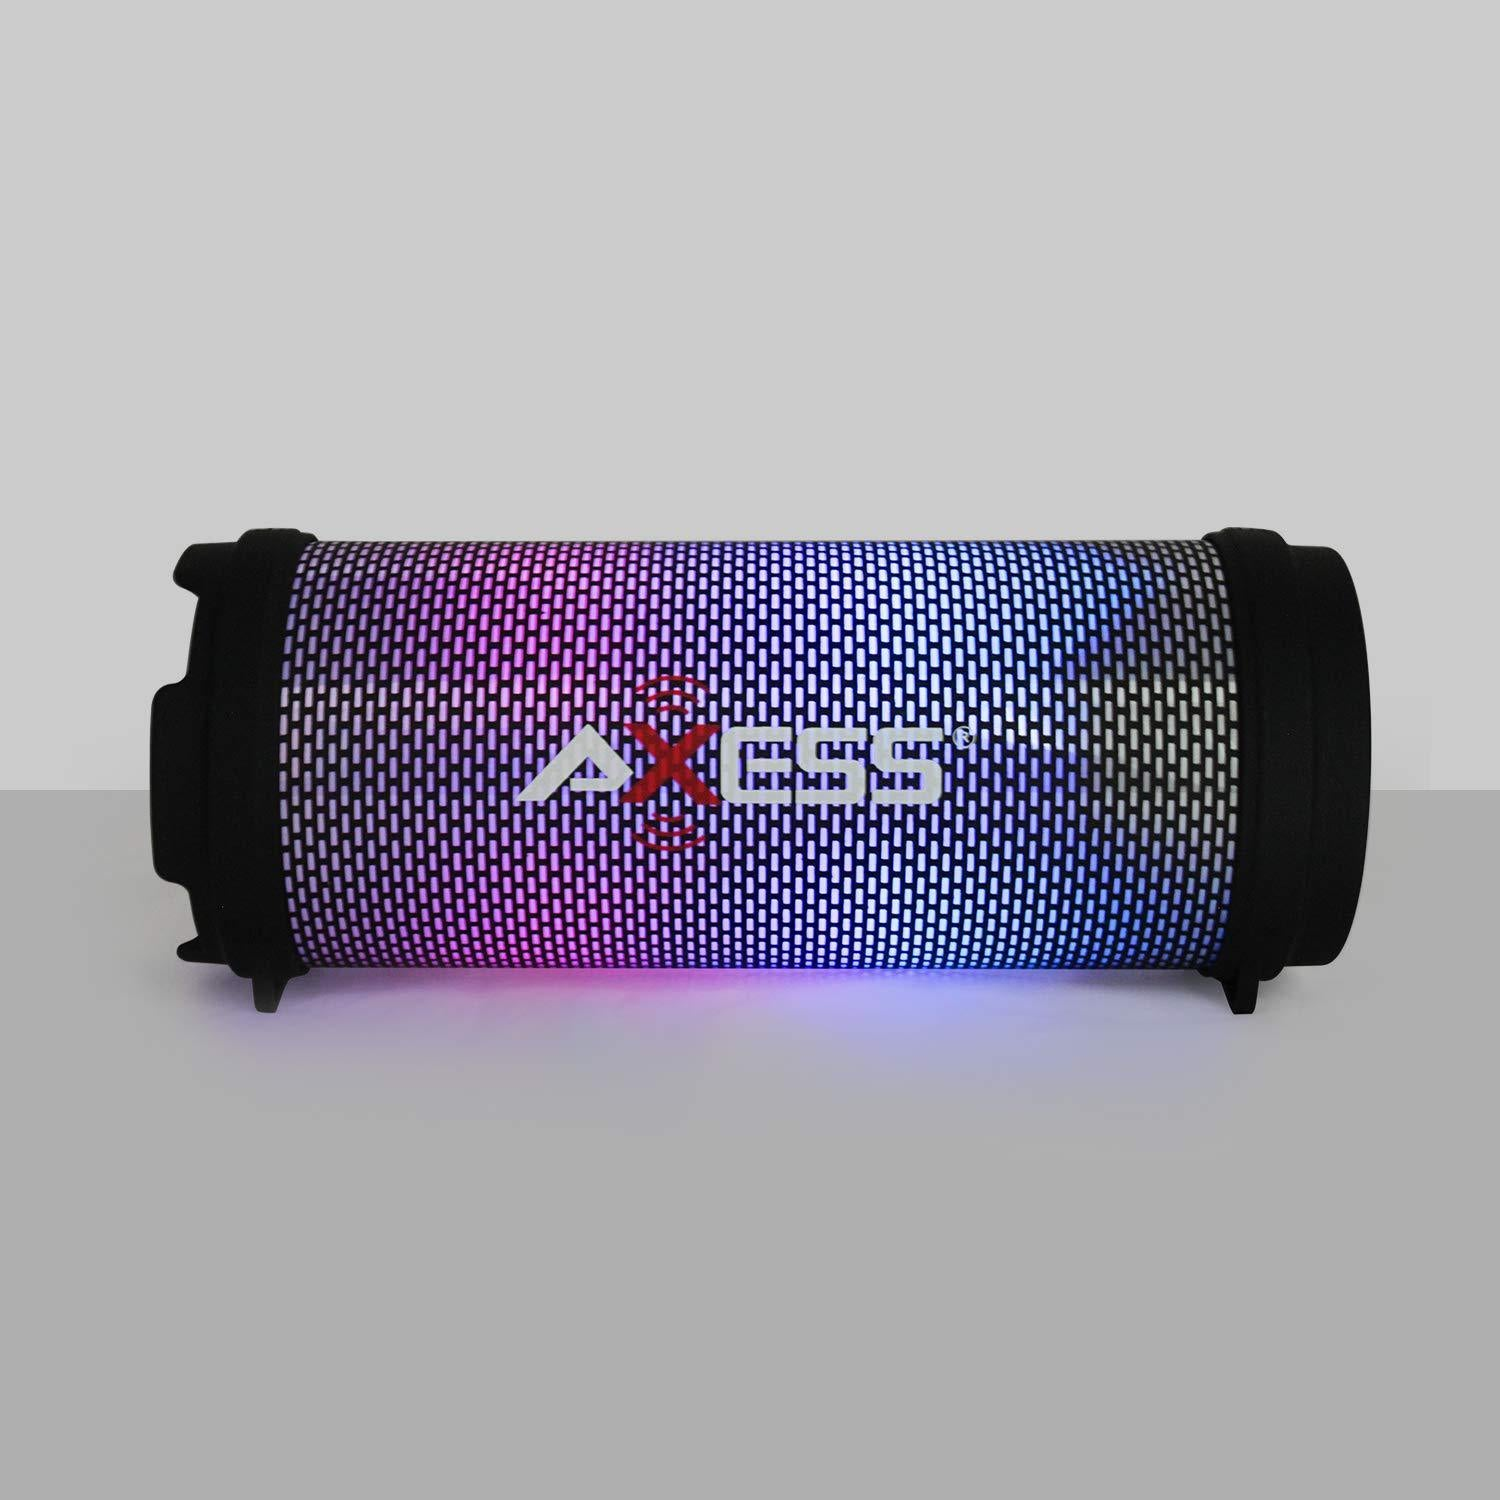 AXESS SPBL1043 Mini Portable Bluetooth Hi-Fi Bluetooth Speaker with Dancing LED Lights, Blue